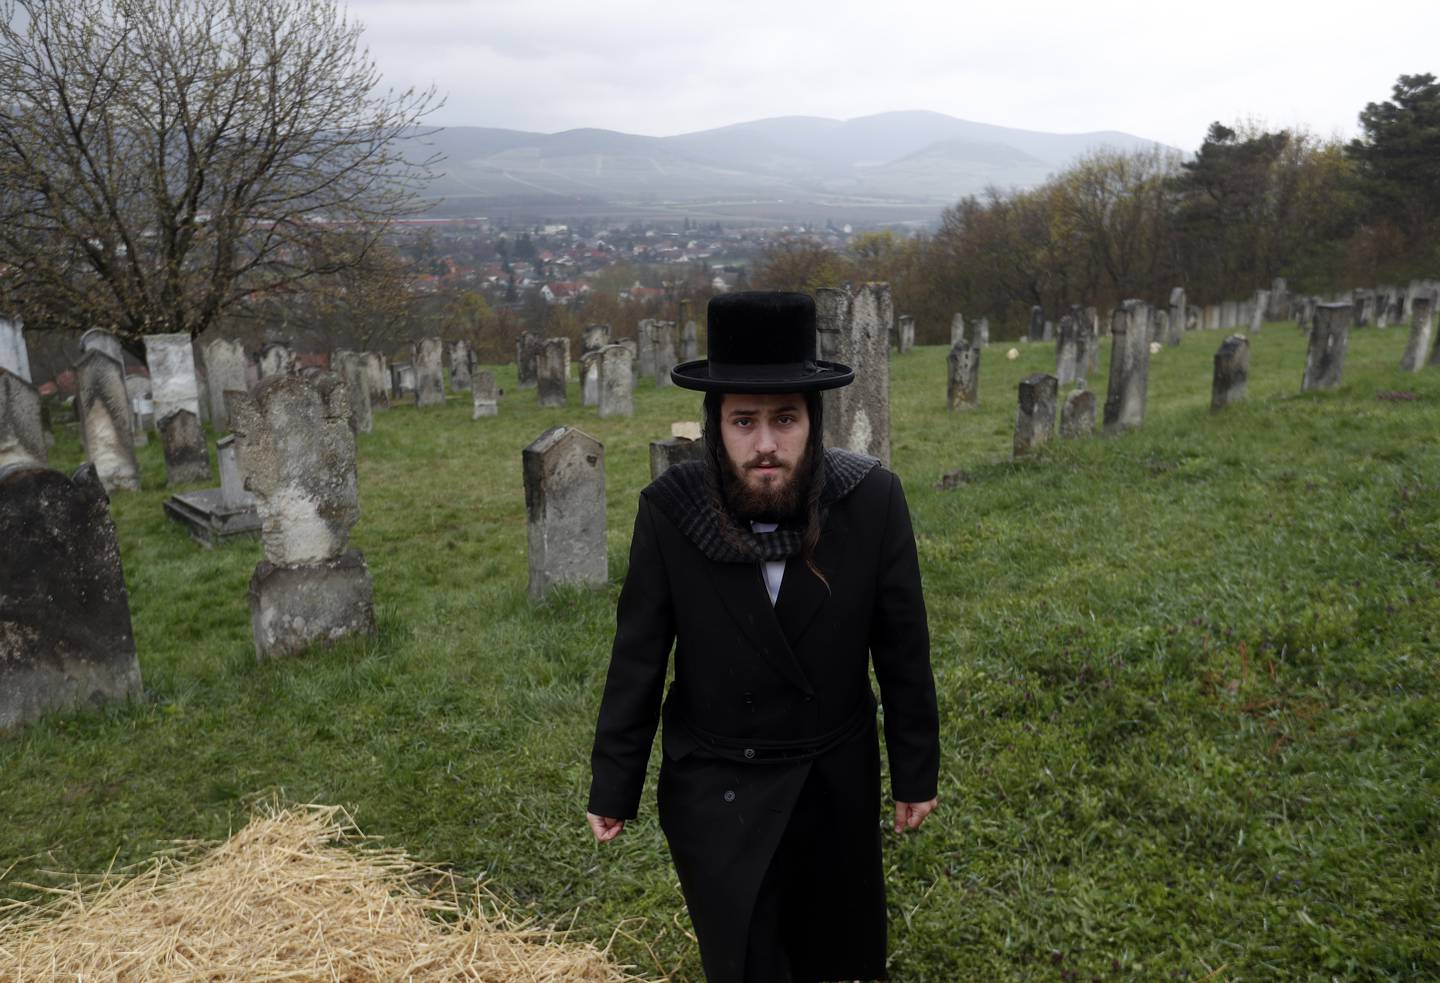 Hasidic Jewish pilgrims walk to the grave of Grand Rabbi Yeshaya Steiner, founder of a famous Hasidic dynasty, to commemorate the anniversary of his day of death in the village of Bodrogkeresztur, Hungary, Thursday, April 15, 2021. Despite many government imposed restrictions in place in Hungary to prevent the spread of the coronavirus, religious events may still be held. AP Photo/Laszlo Balogh